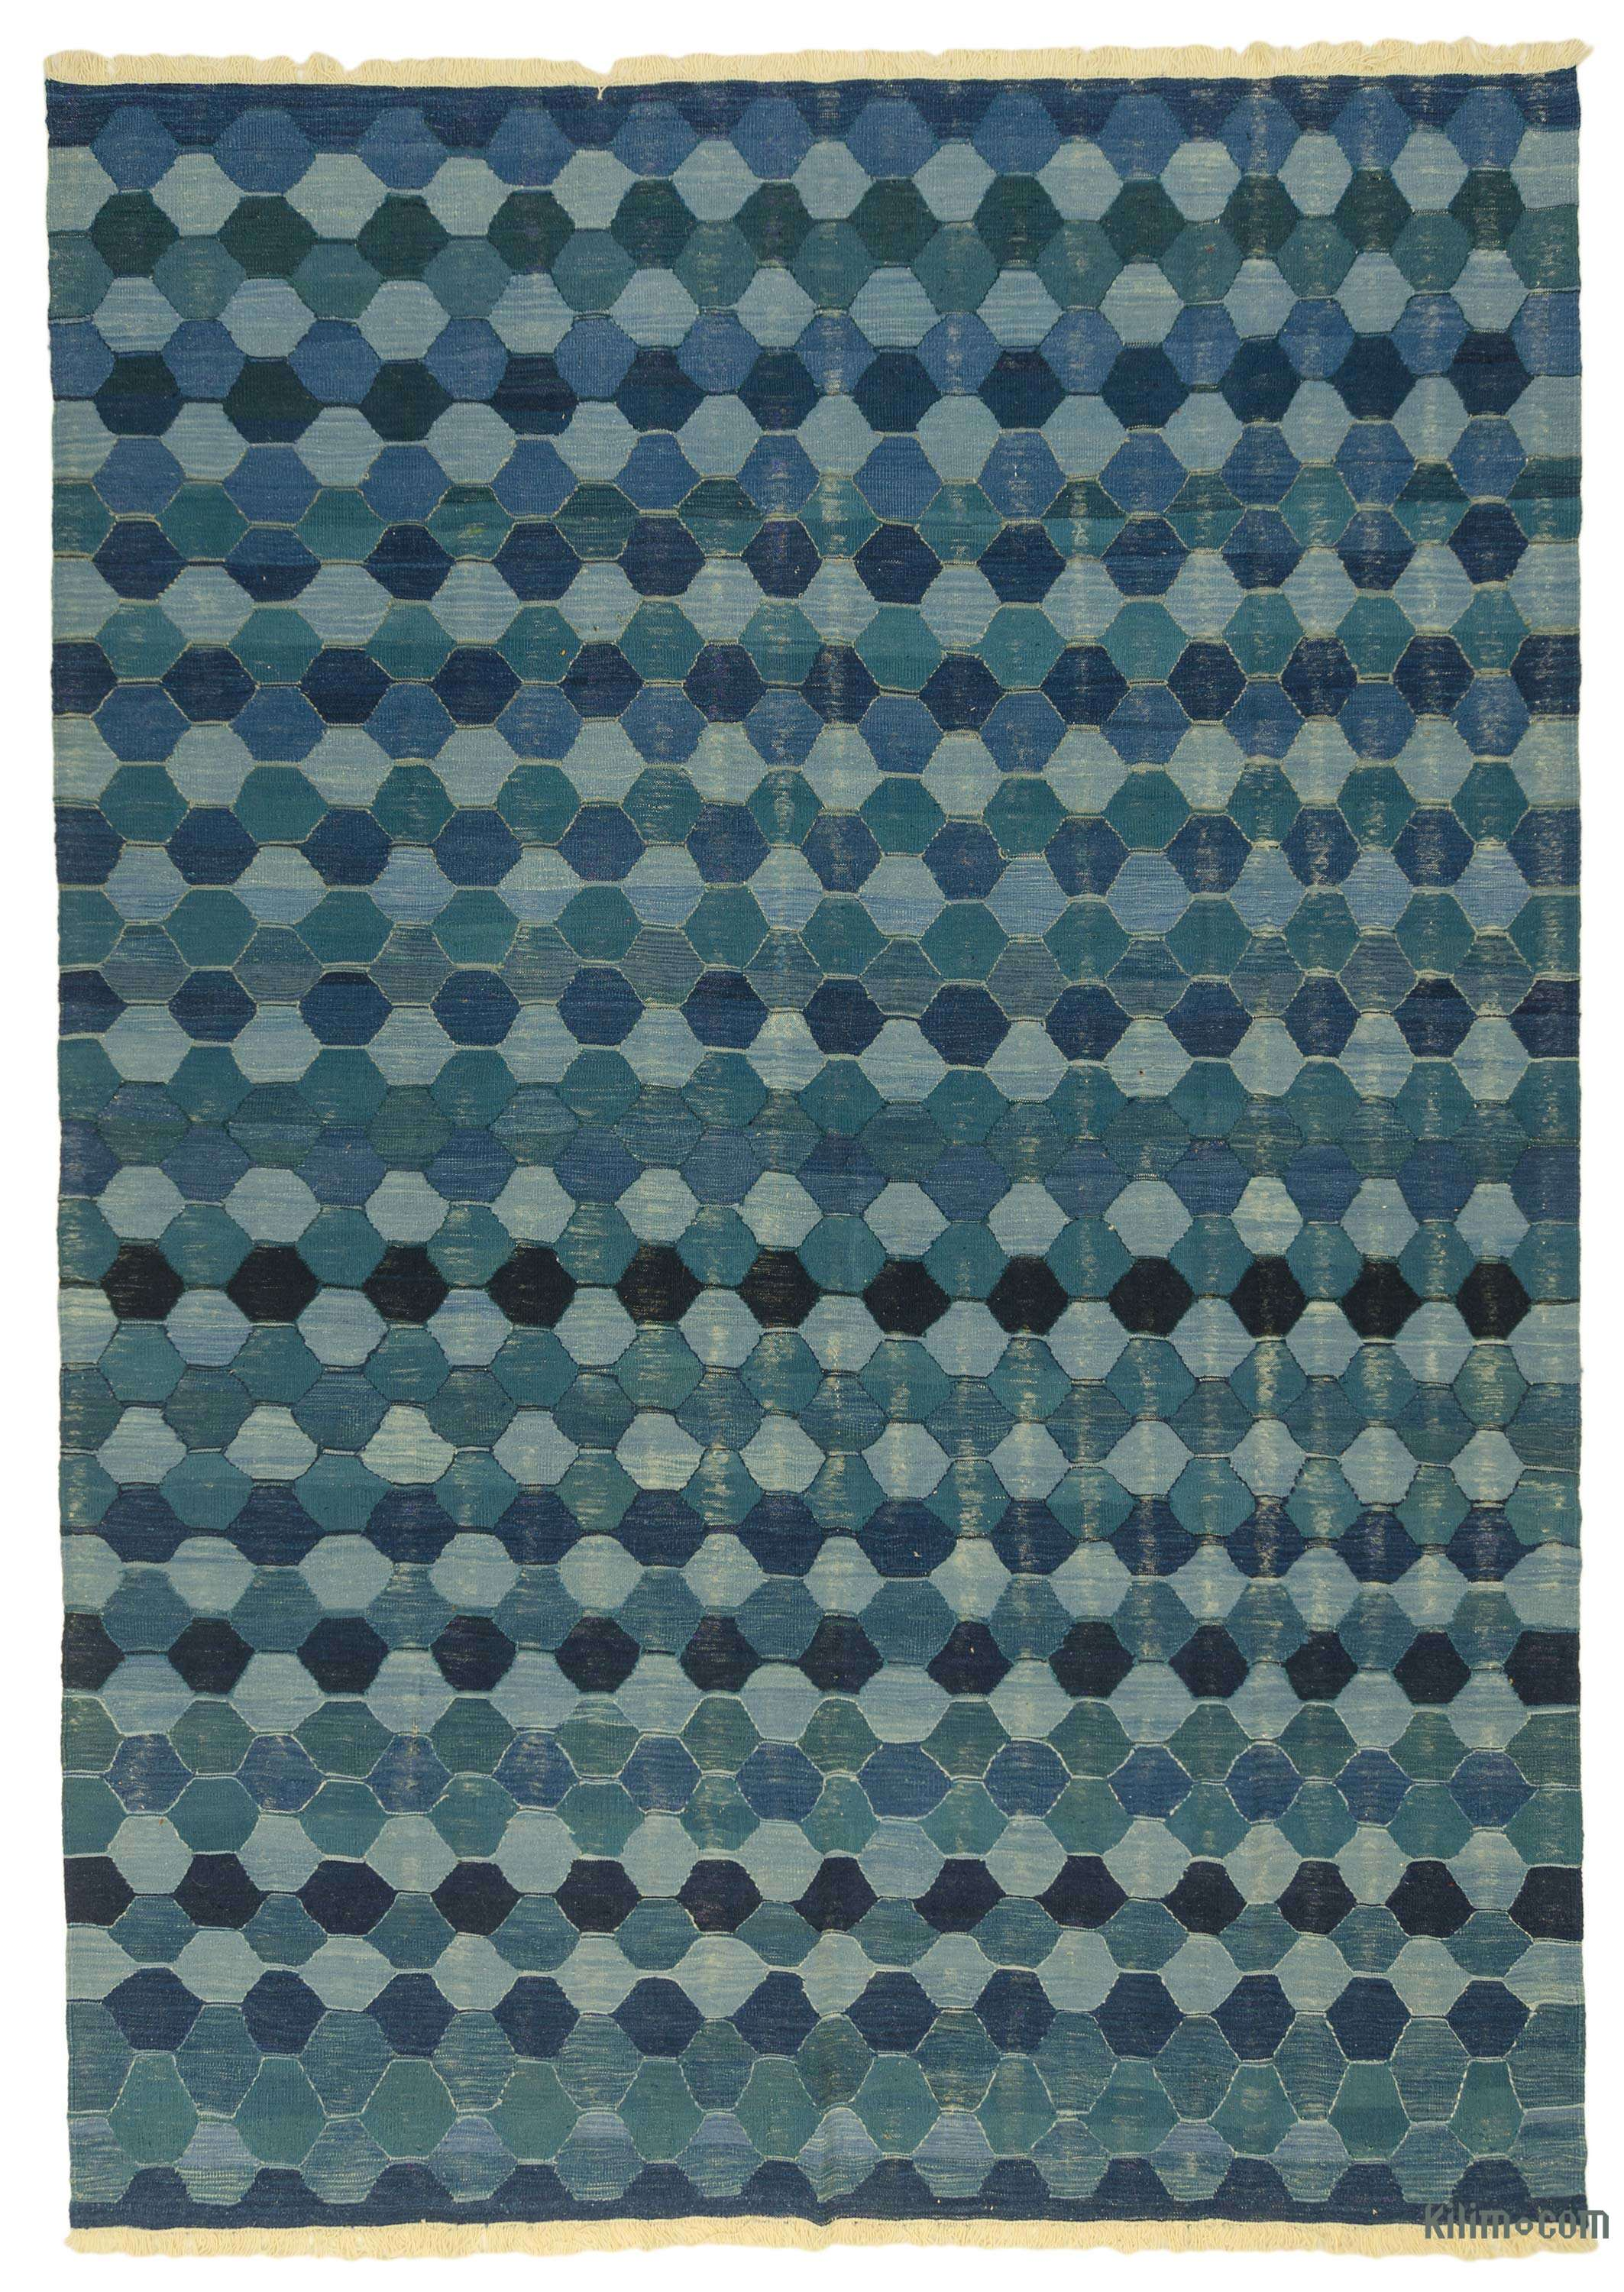 K0043332 Blue New Handwoven Turkish Kilim Rug 8 10 X 12 8 106 In X 152 In The Source For Hand Knotted Vintage Rugs Hand Woven Kilim Rugs Wool Turkish Rugs Overdyed Persian Rugs